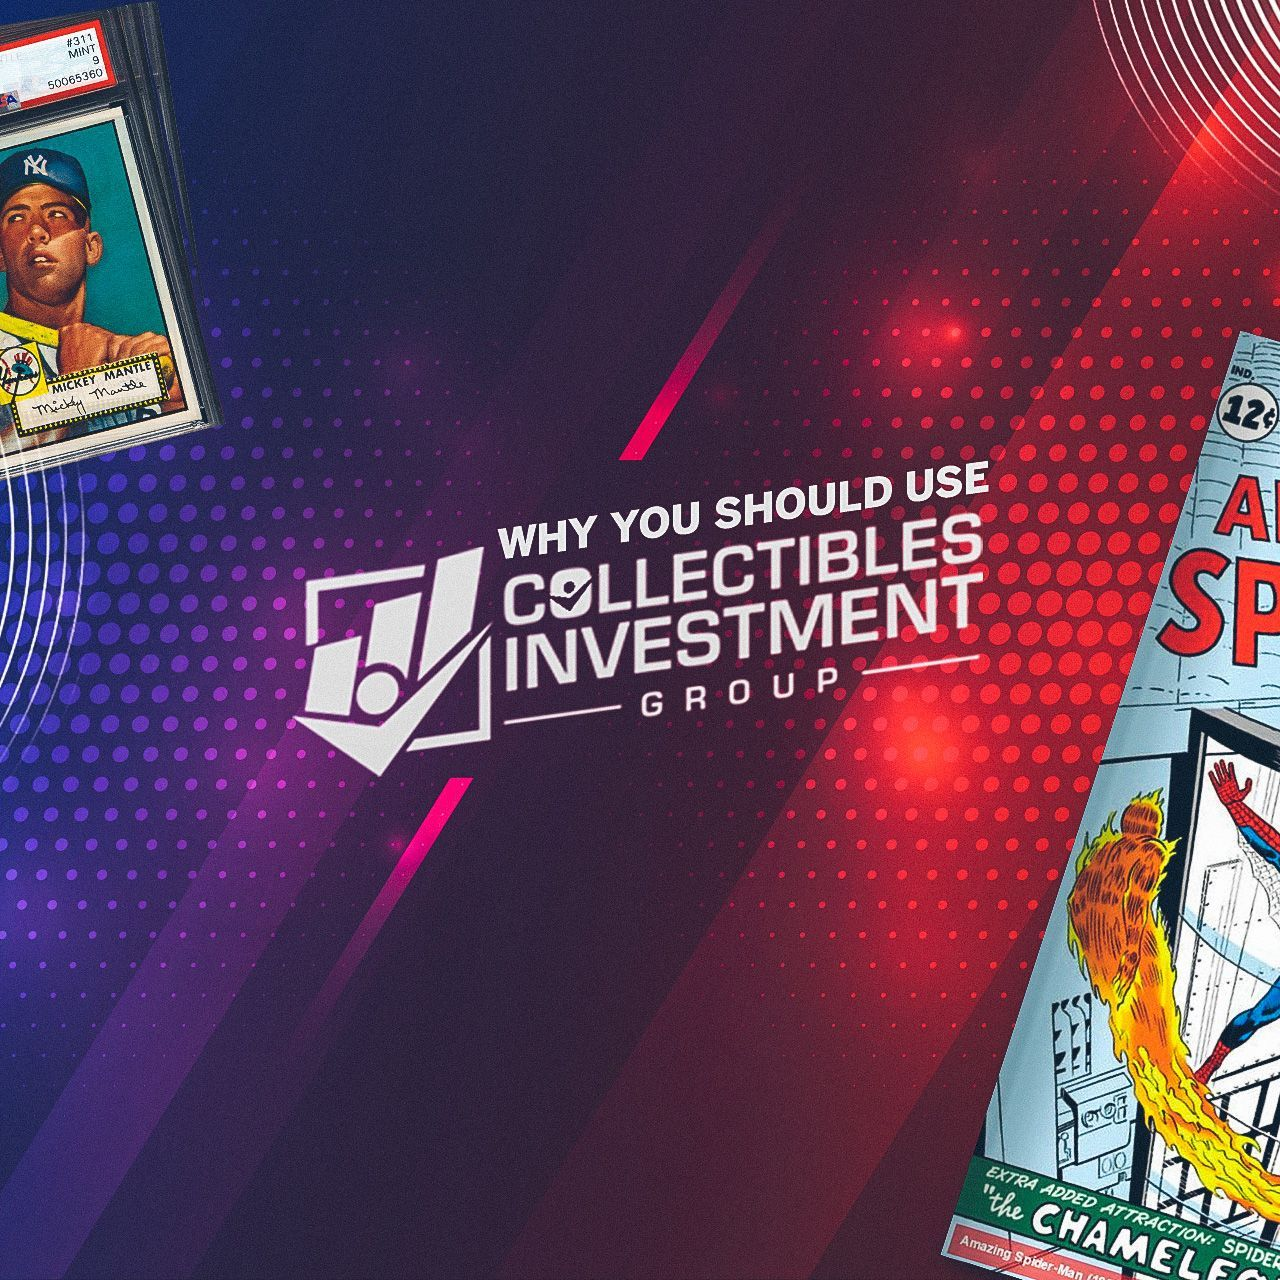 Why You Should Trust Collectibles Investment Group to Appraise Your Comic Book Collection